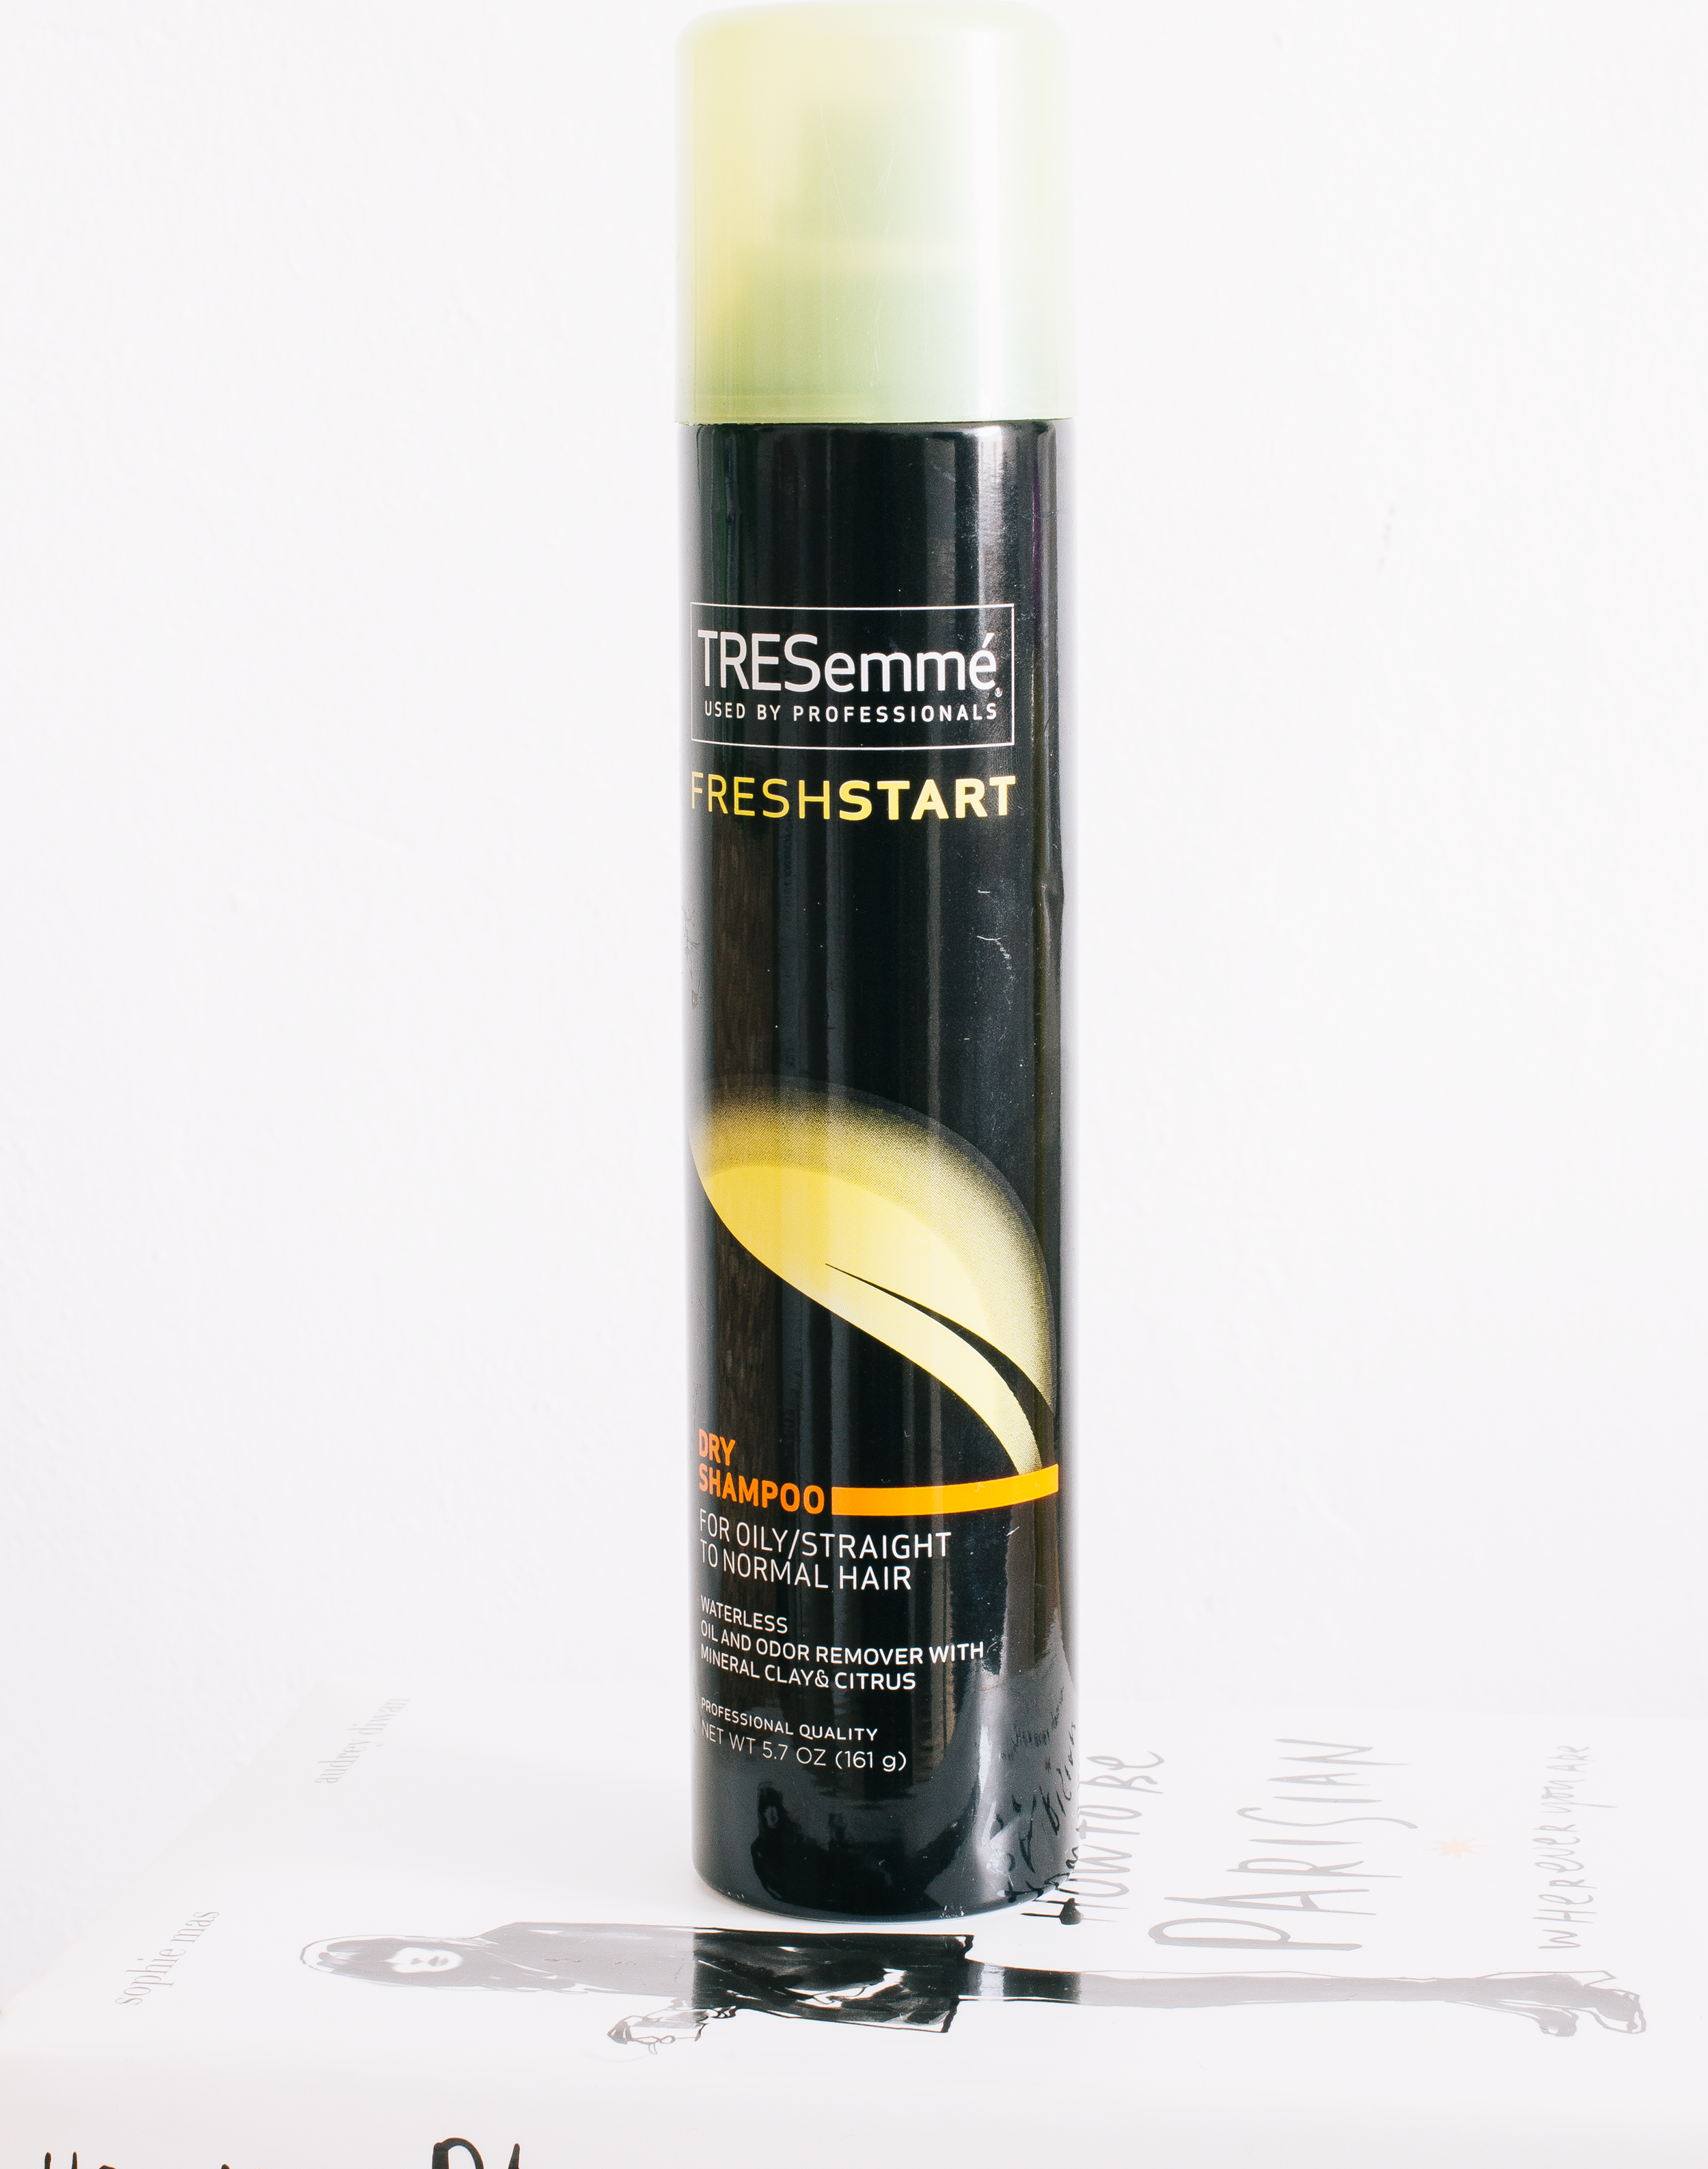 tresemme fresh start - This is a budget dry shampoo that I've used on and off for years. I will say, it's not my favourite affordable option but it's a good one none the less. My most loved budget option, by the way, are Co-Lab dry shampoos, so many scents and they work perfectly on my hair. This is something I use at night when I know my hair is getting ready for a wash but I don't have time. I spray it on liberally and leave it to absorb overnight, I find by using it this way I get the most out of the product as it's not something I find suitable for a quick spritz before styling as it can be a little heavy. You do have to be careful when using too much of this as it can leave a slight white tinge, nothing too bad but it's still there.